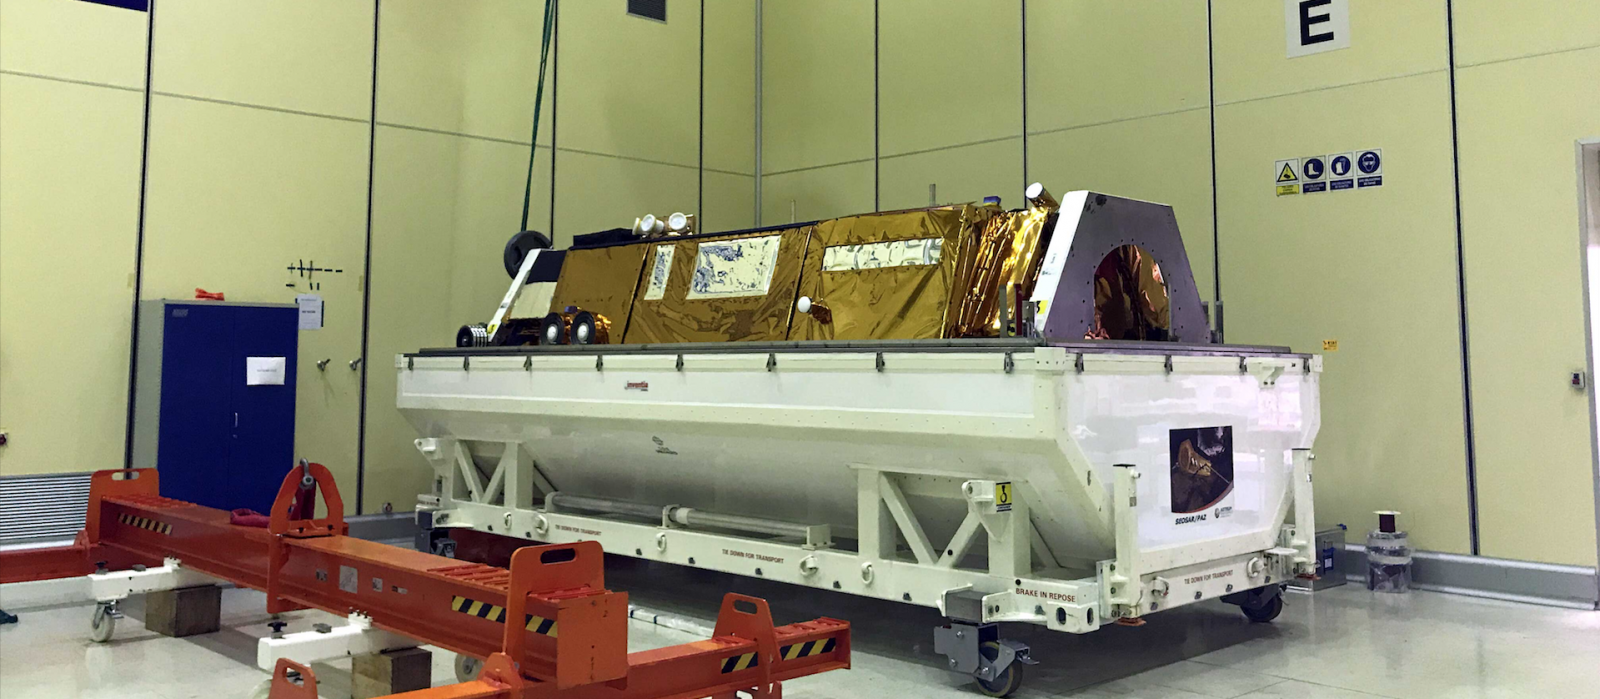 Spain's PAZ radar-imaging satellite being prepared for shipment to Vandenberg Air Force Base. Photo Credit: Airbus